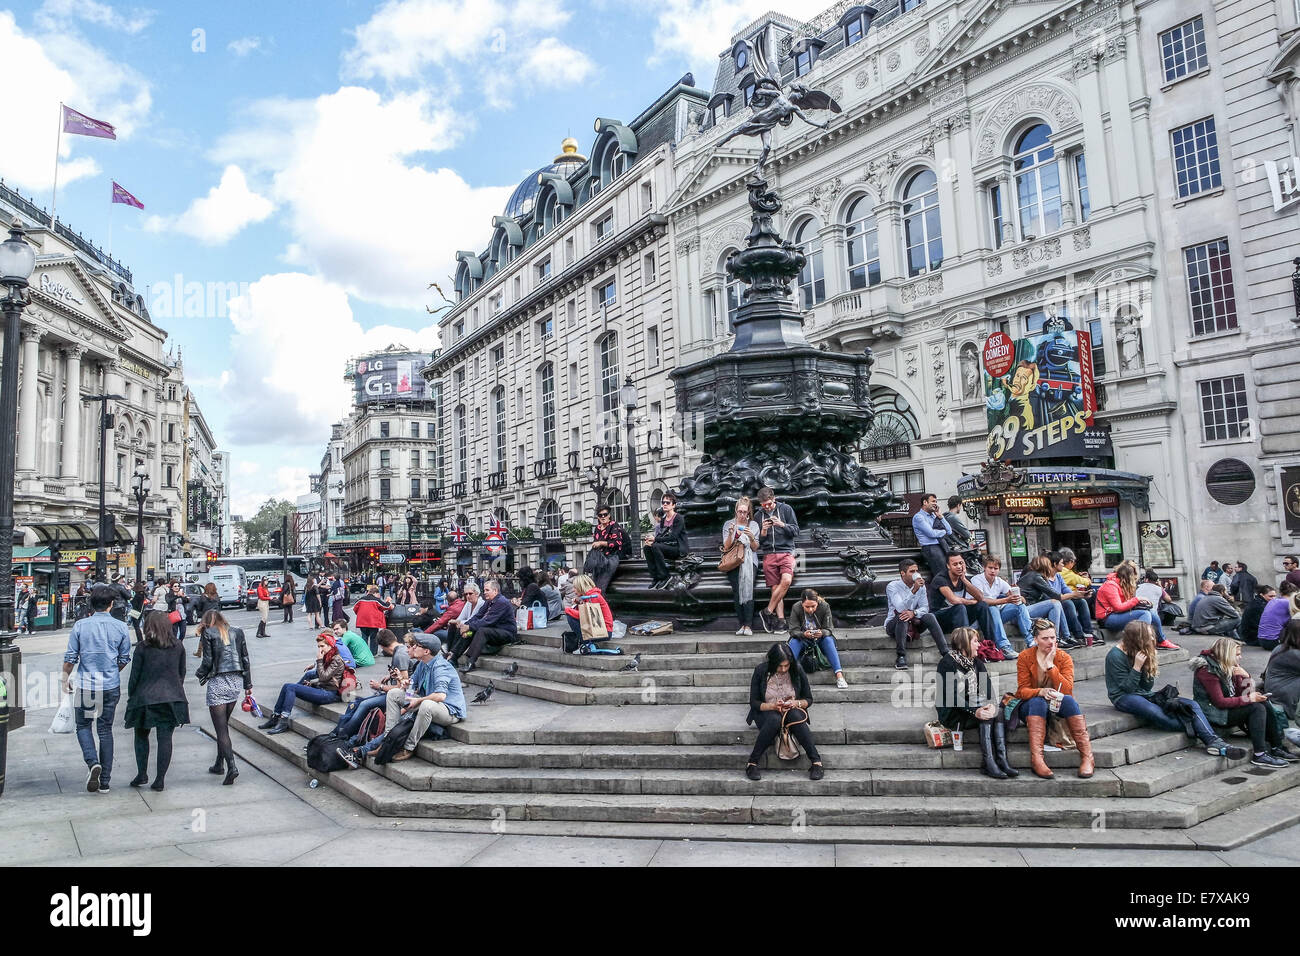 Piccadilly Circus,London, Tourists sit on the Steps of the Eros Statue - Stock Image